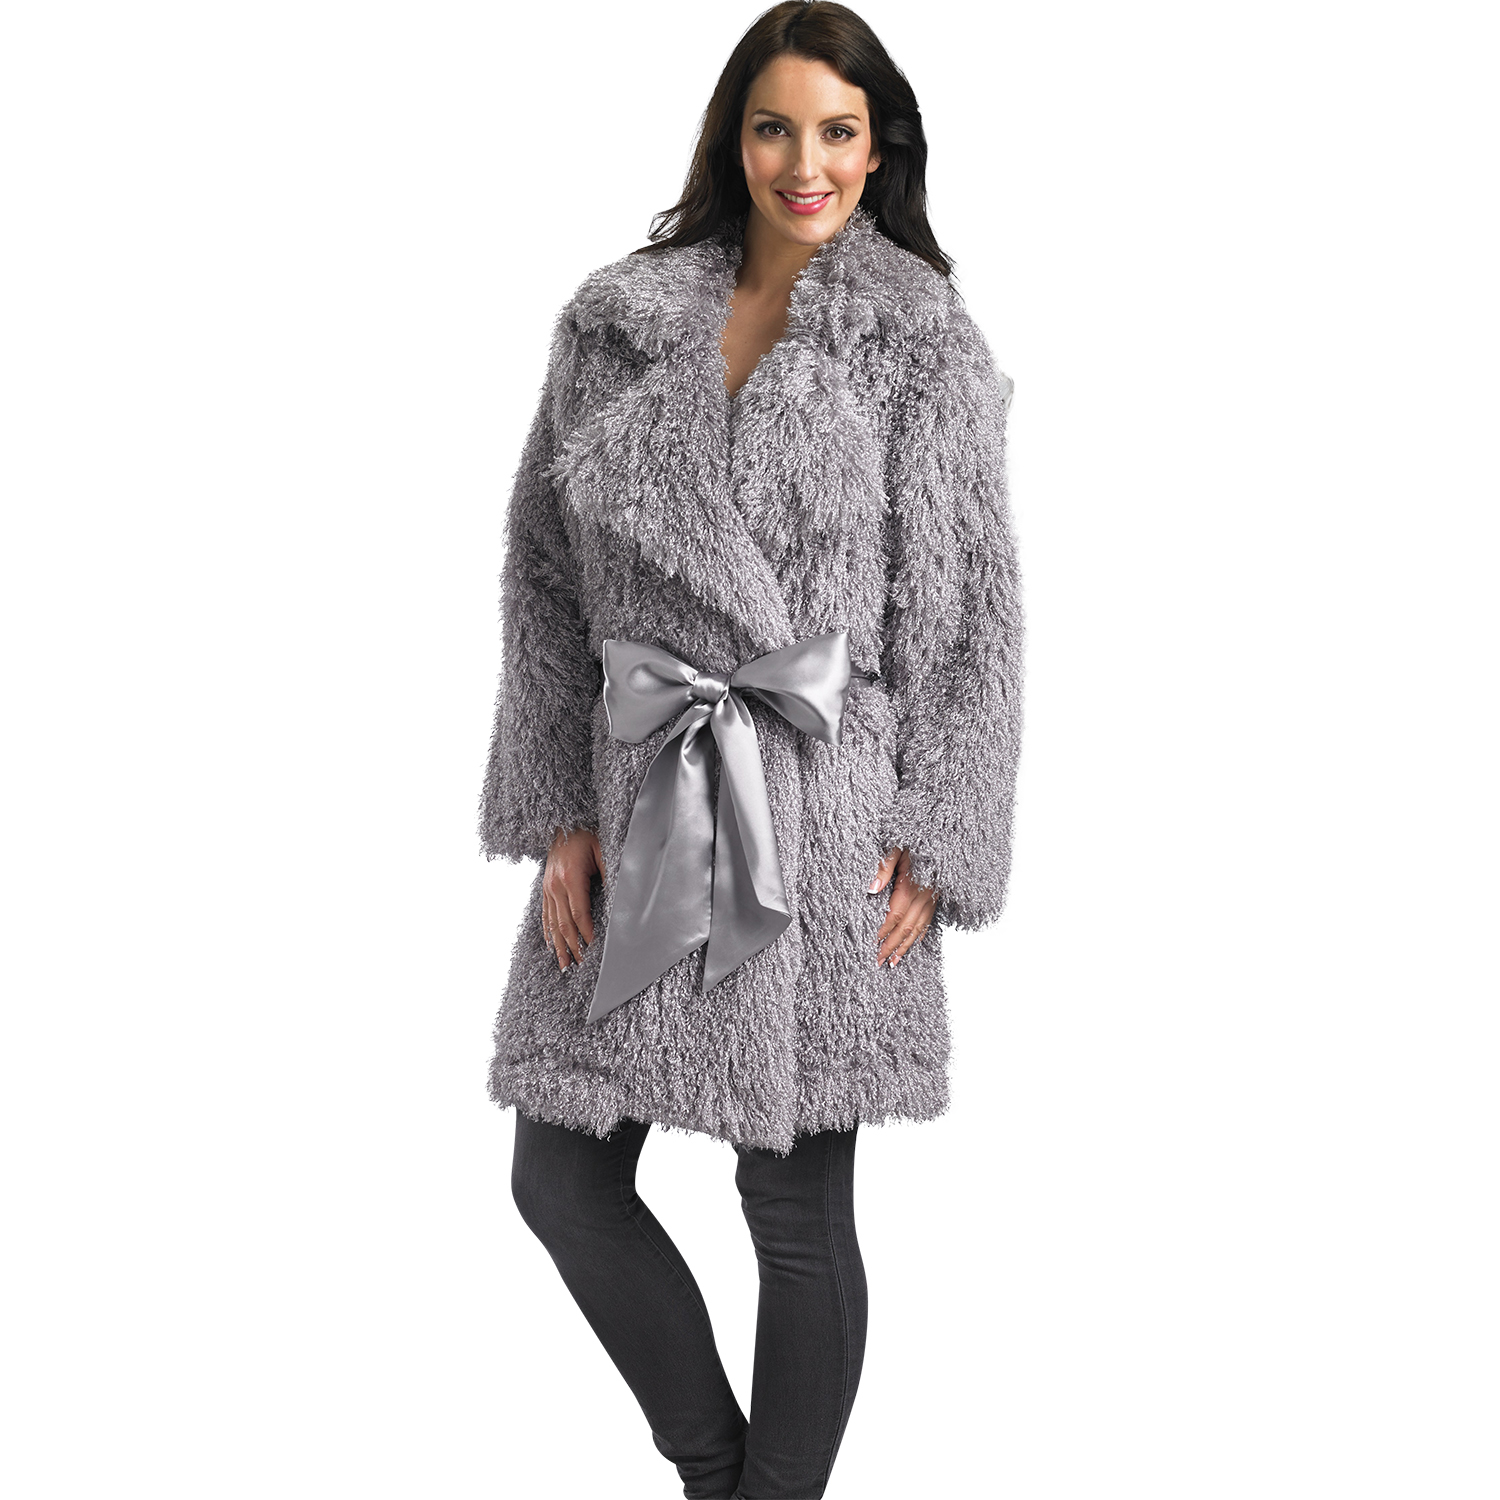 Short Fluffy Dressing Gown - Home Decorating Ideas & Interior Design